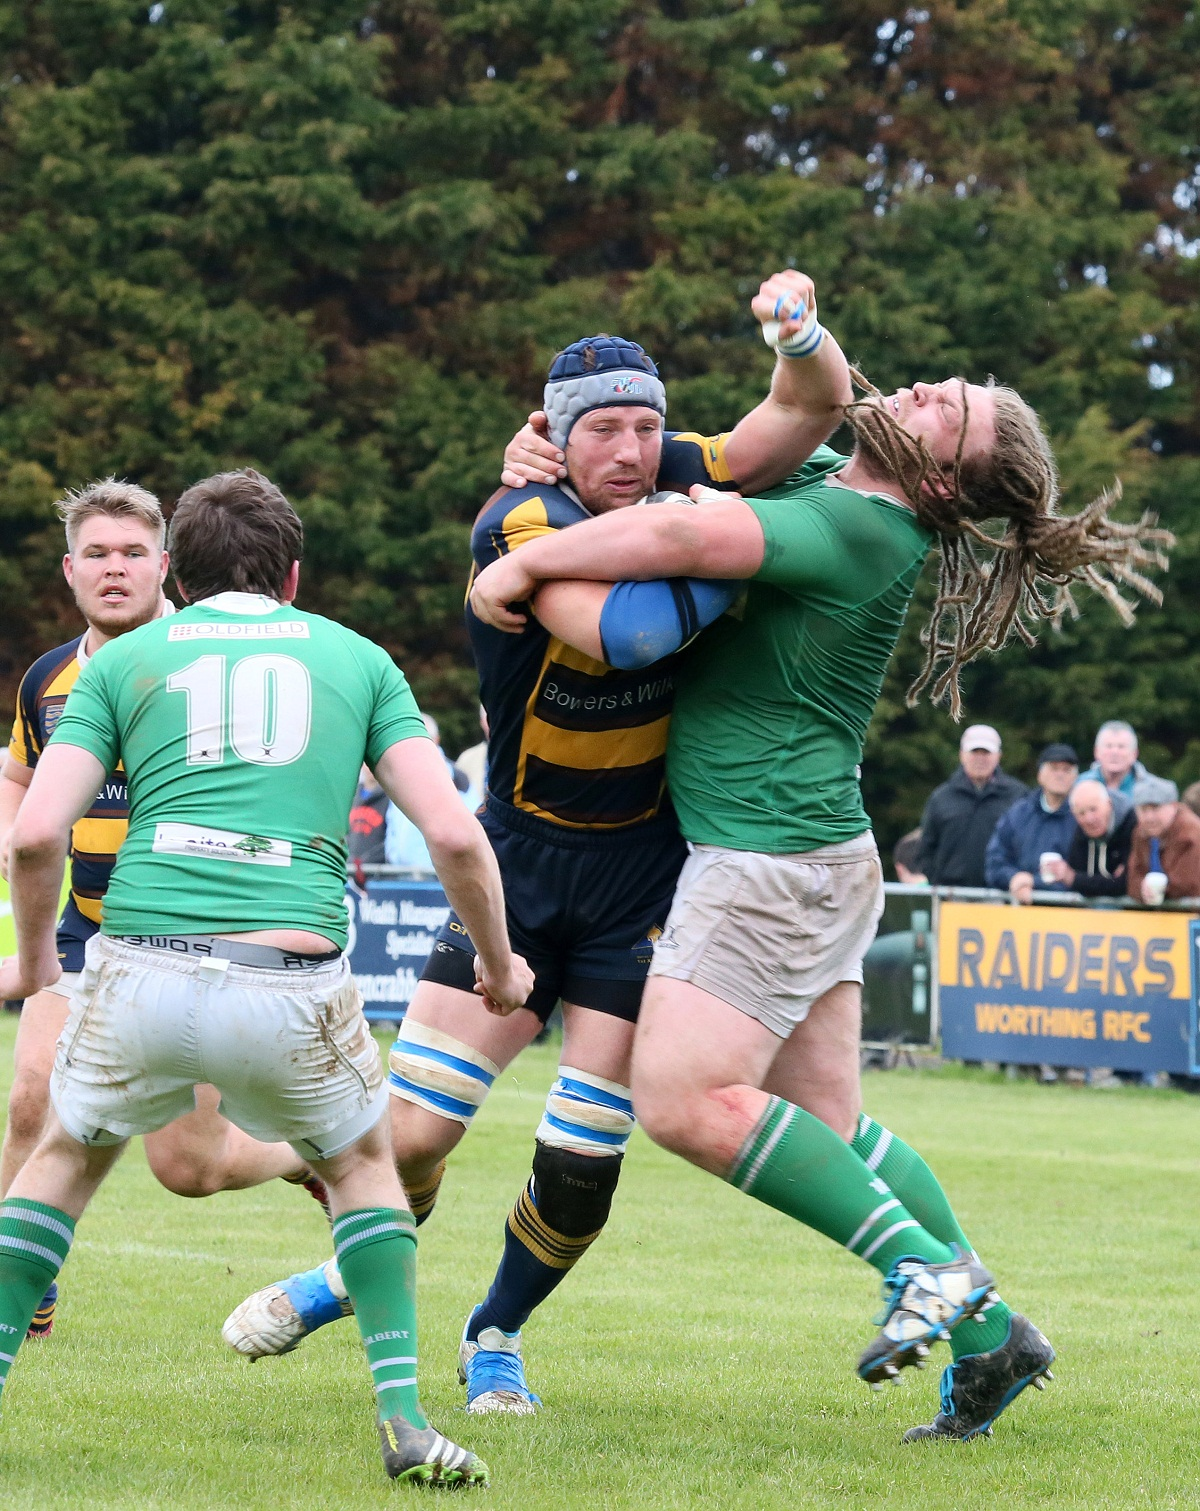 Wharfedale tackler Aaron Myers is halted in no uncertain terms at Worthing. Picture: Warwick Baker